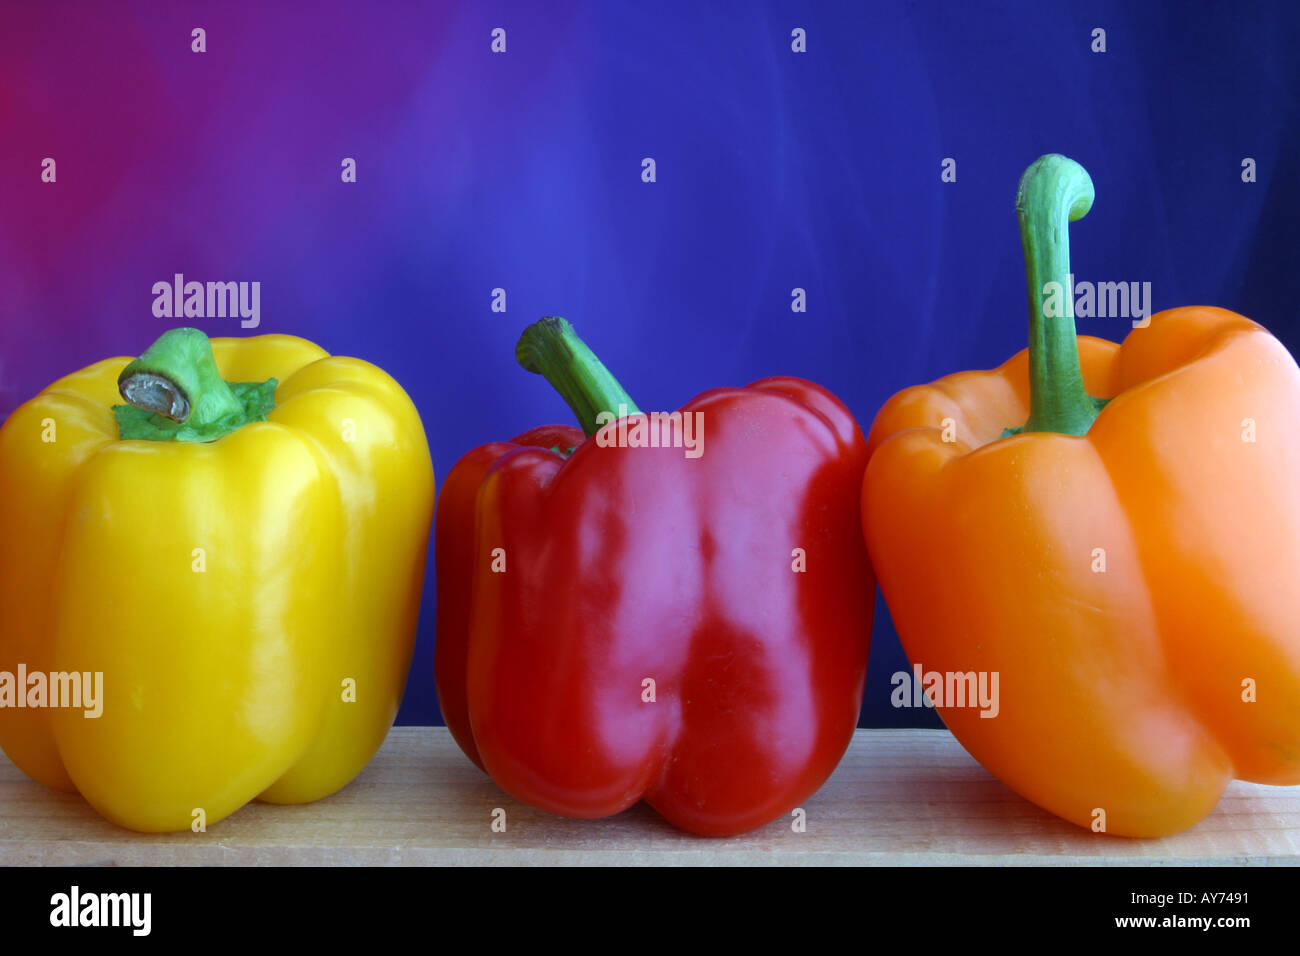 Yellow red and orange bell peppers with purple background - Stock Image